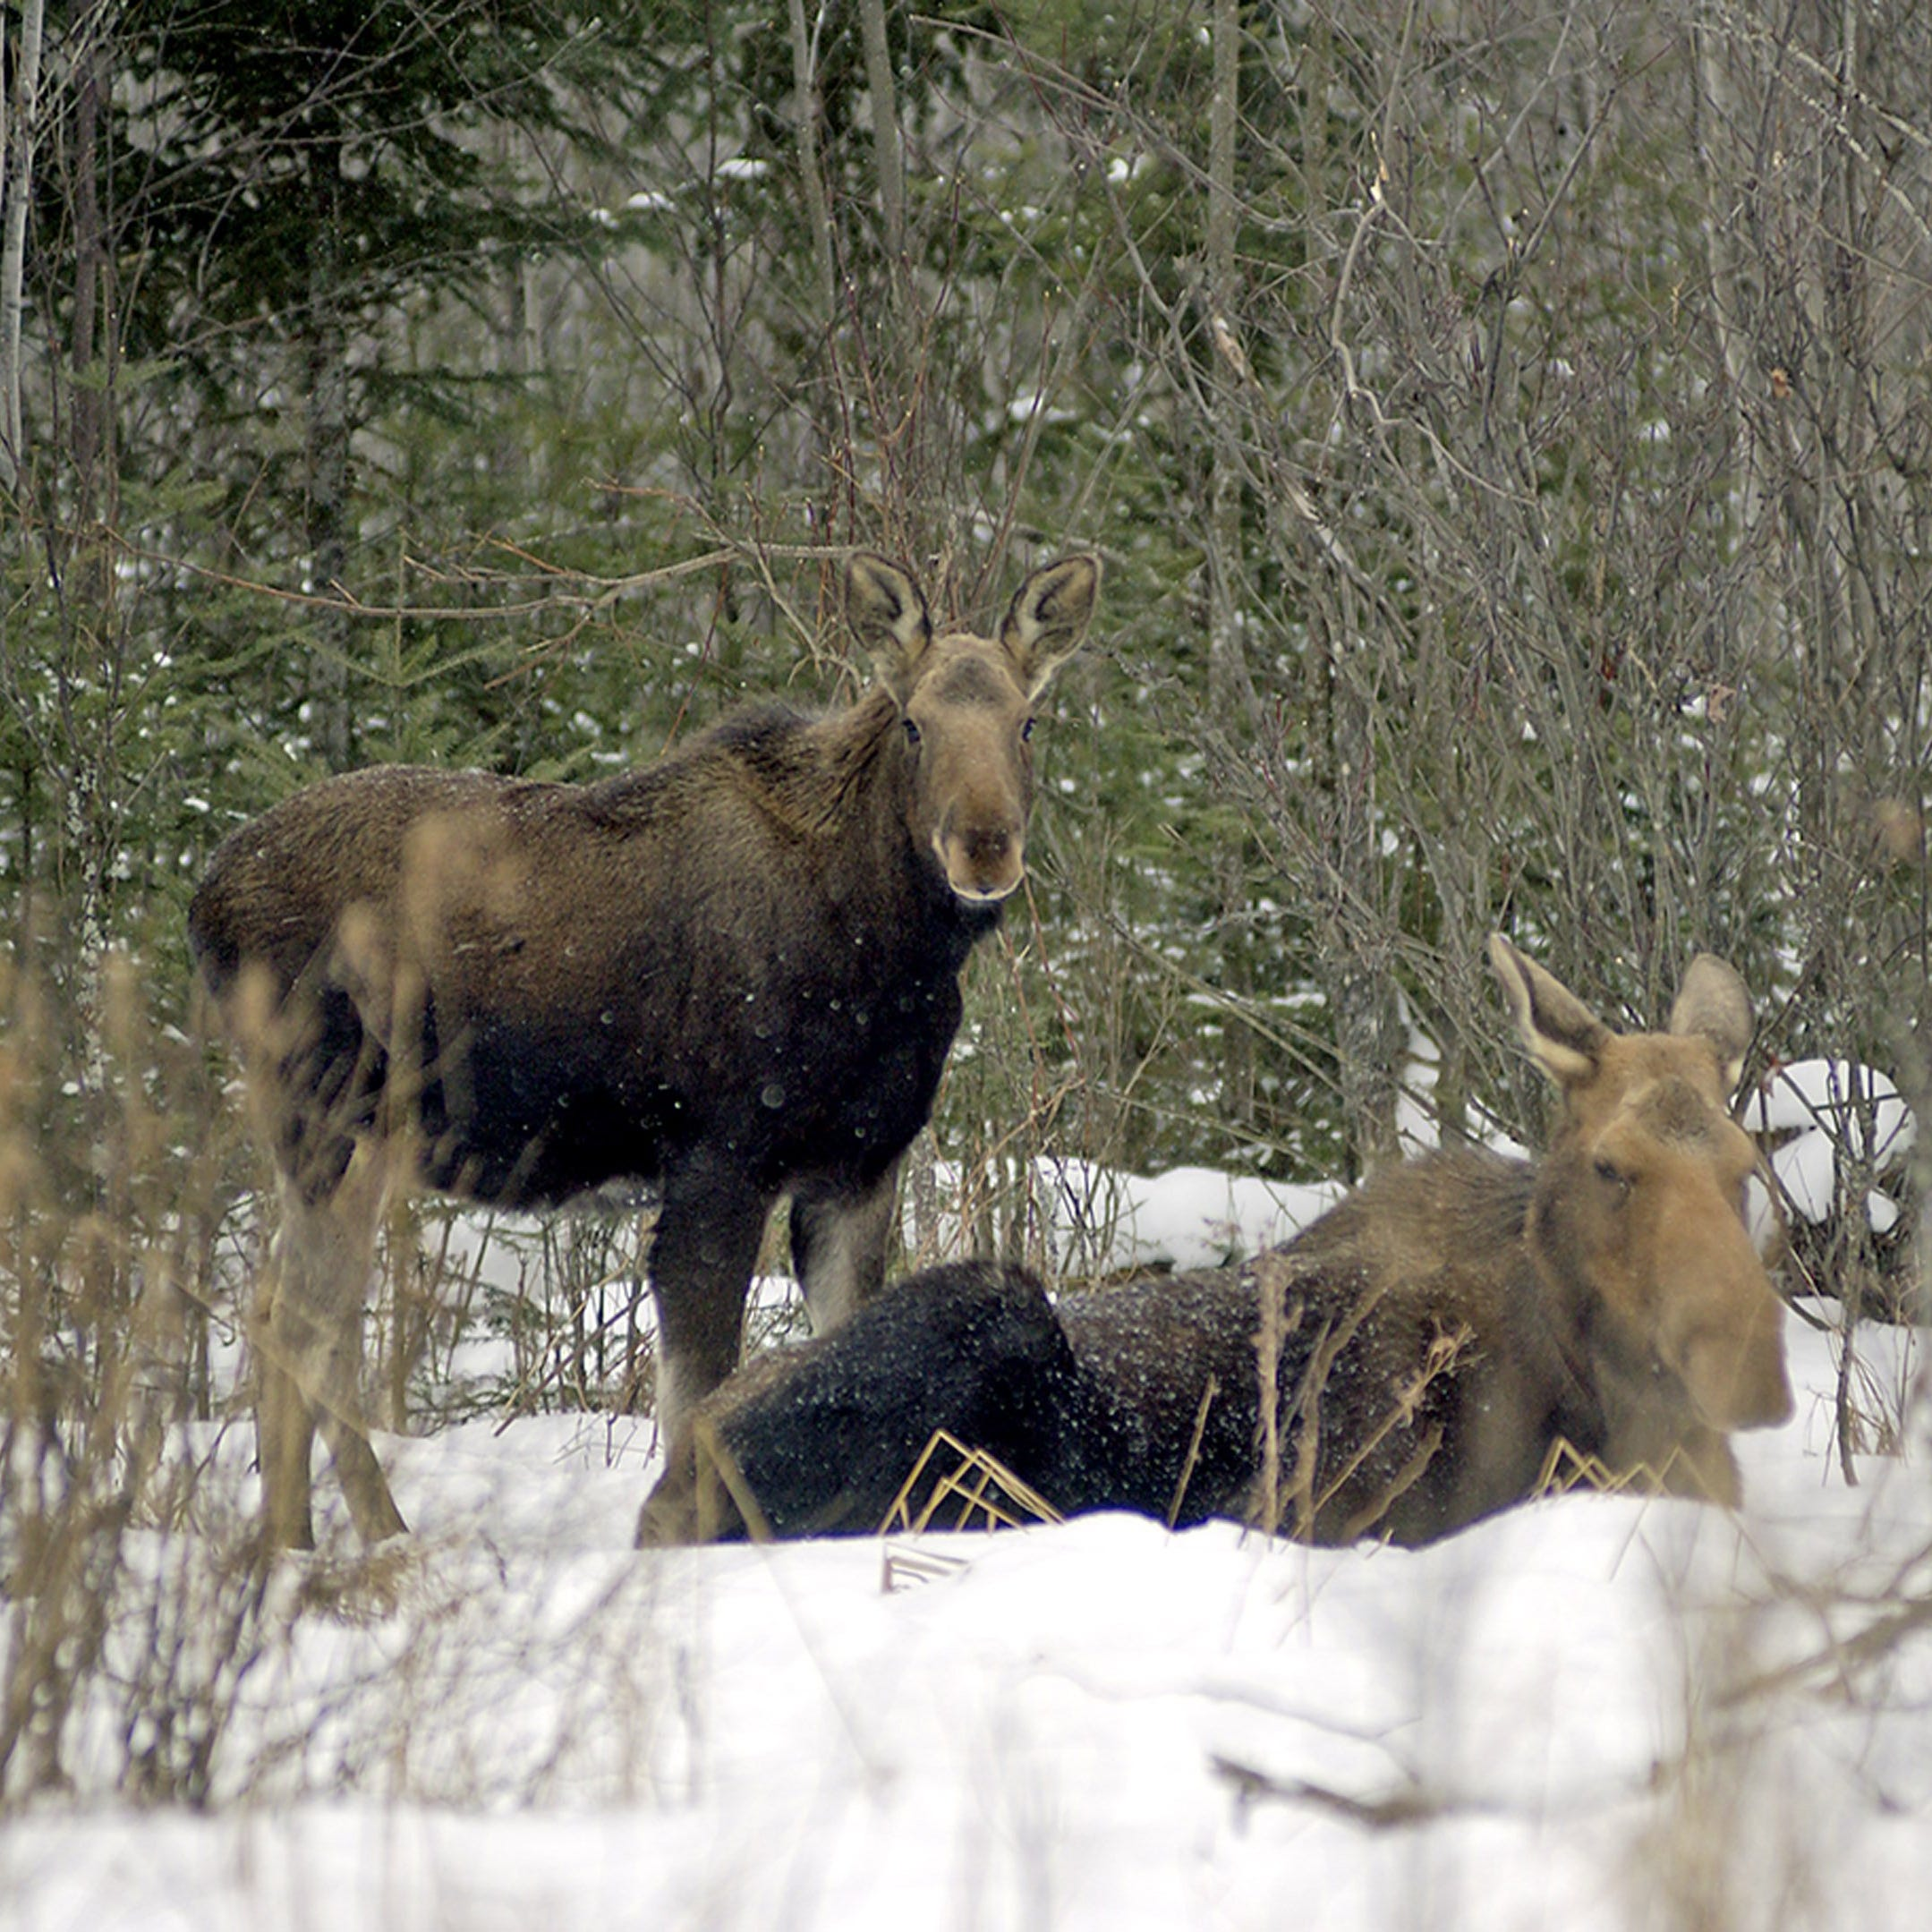 Moose population in western Upper Peninsula estimated at 509